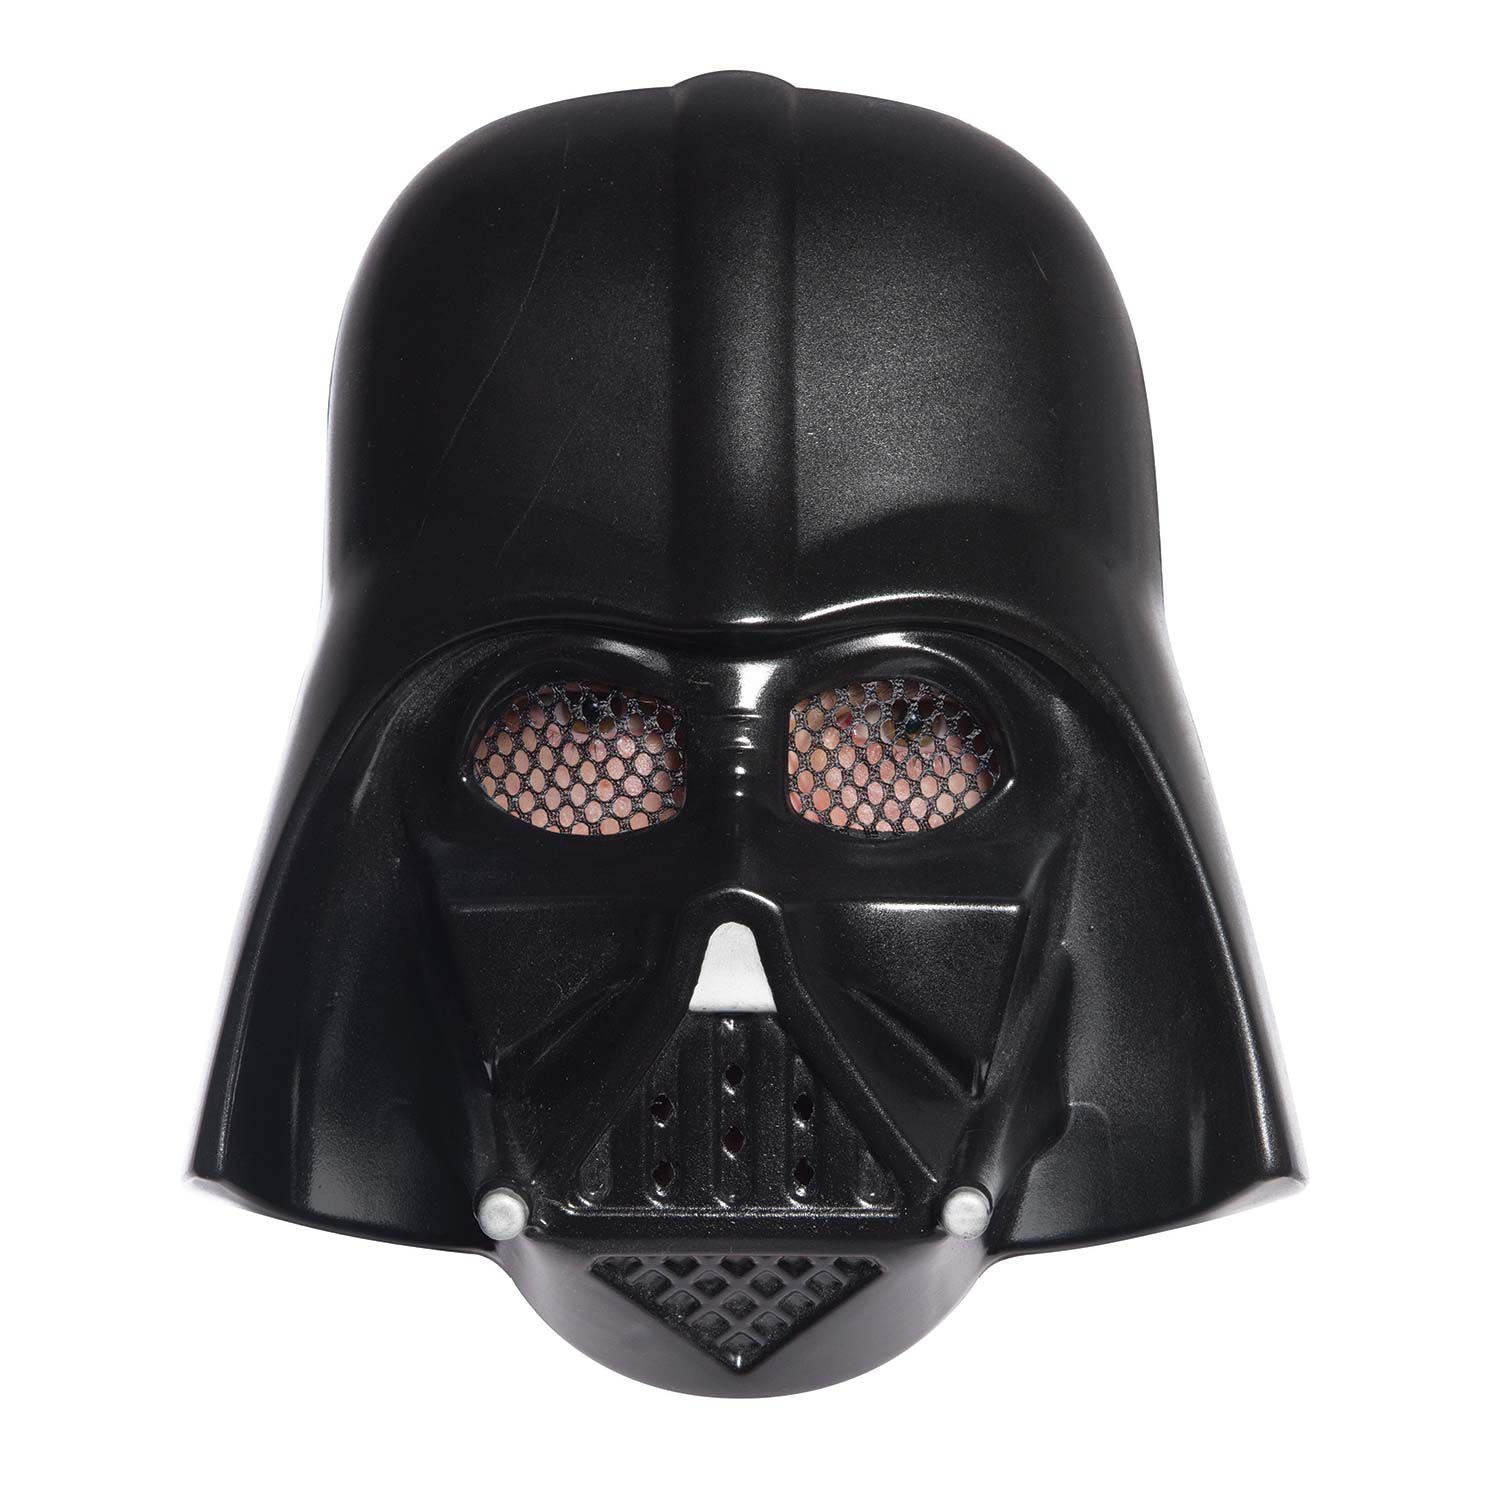 Star Wars Darth Vader Vacuform Mask